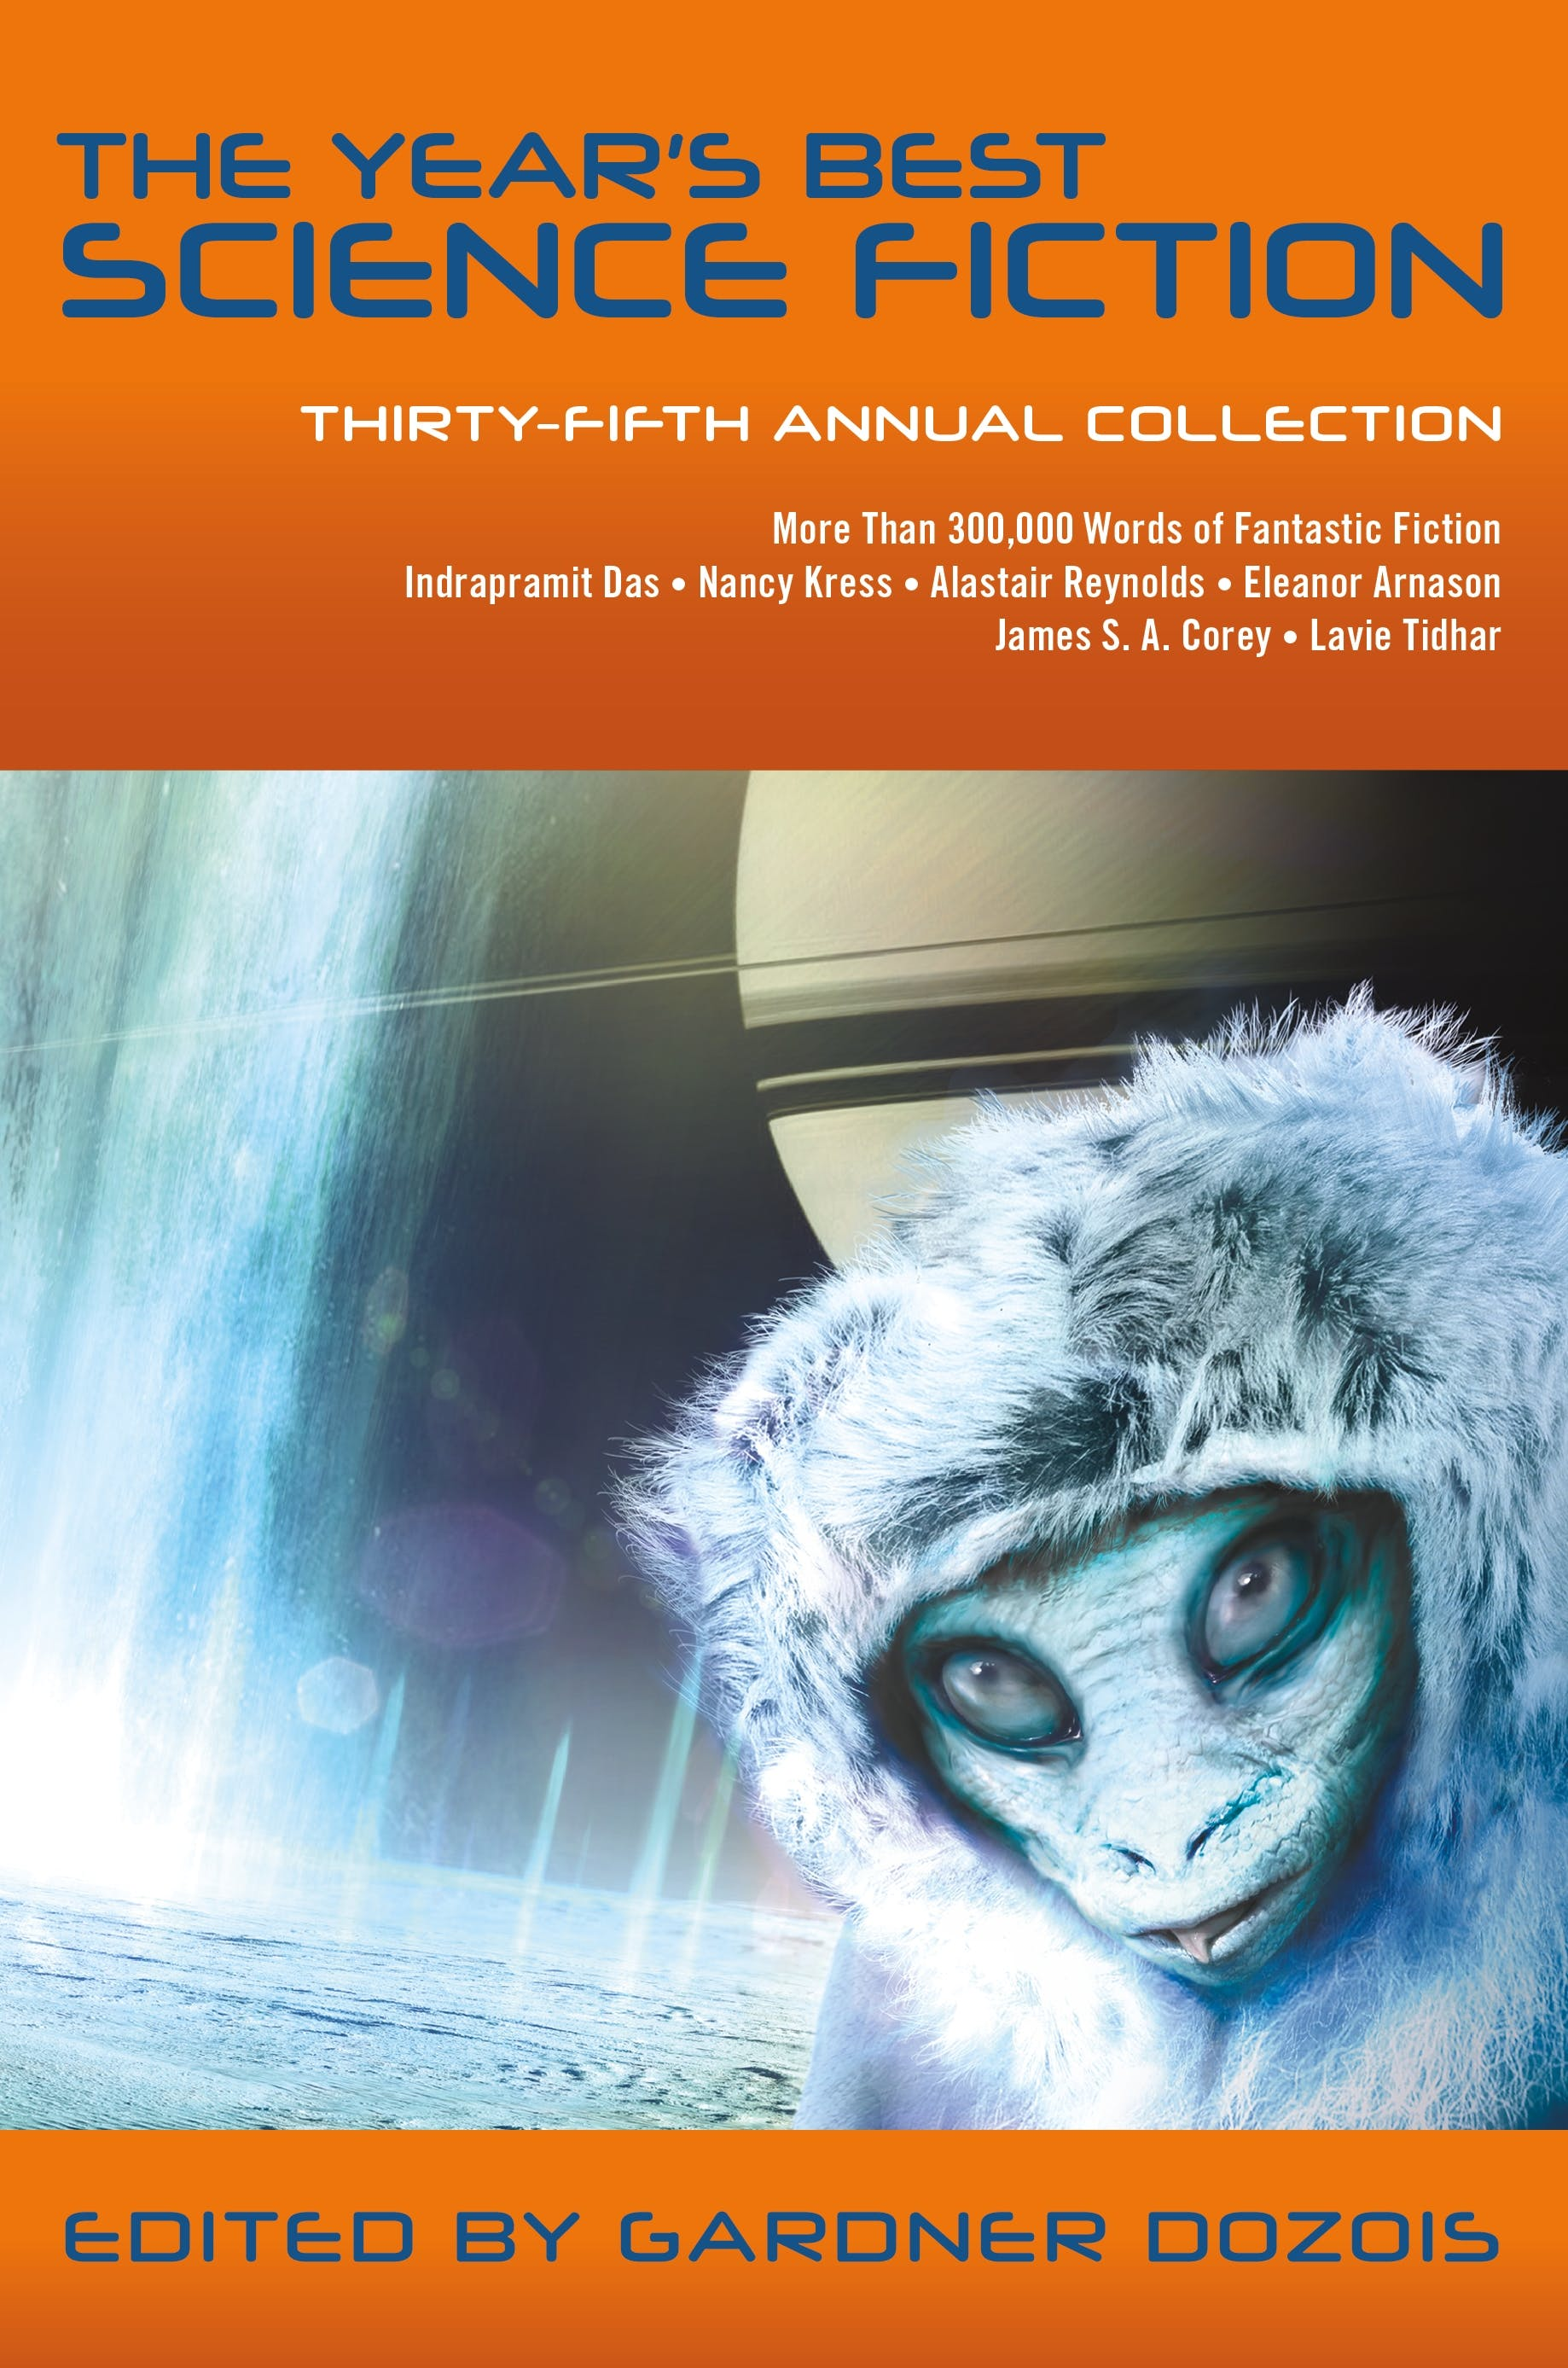 Image of The Year's Best Science Fiction: Thirty-Fifth Annual Collection